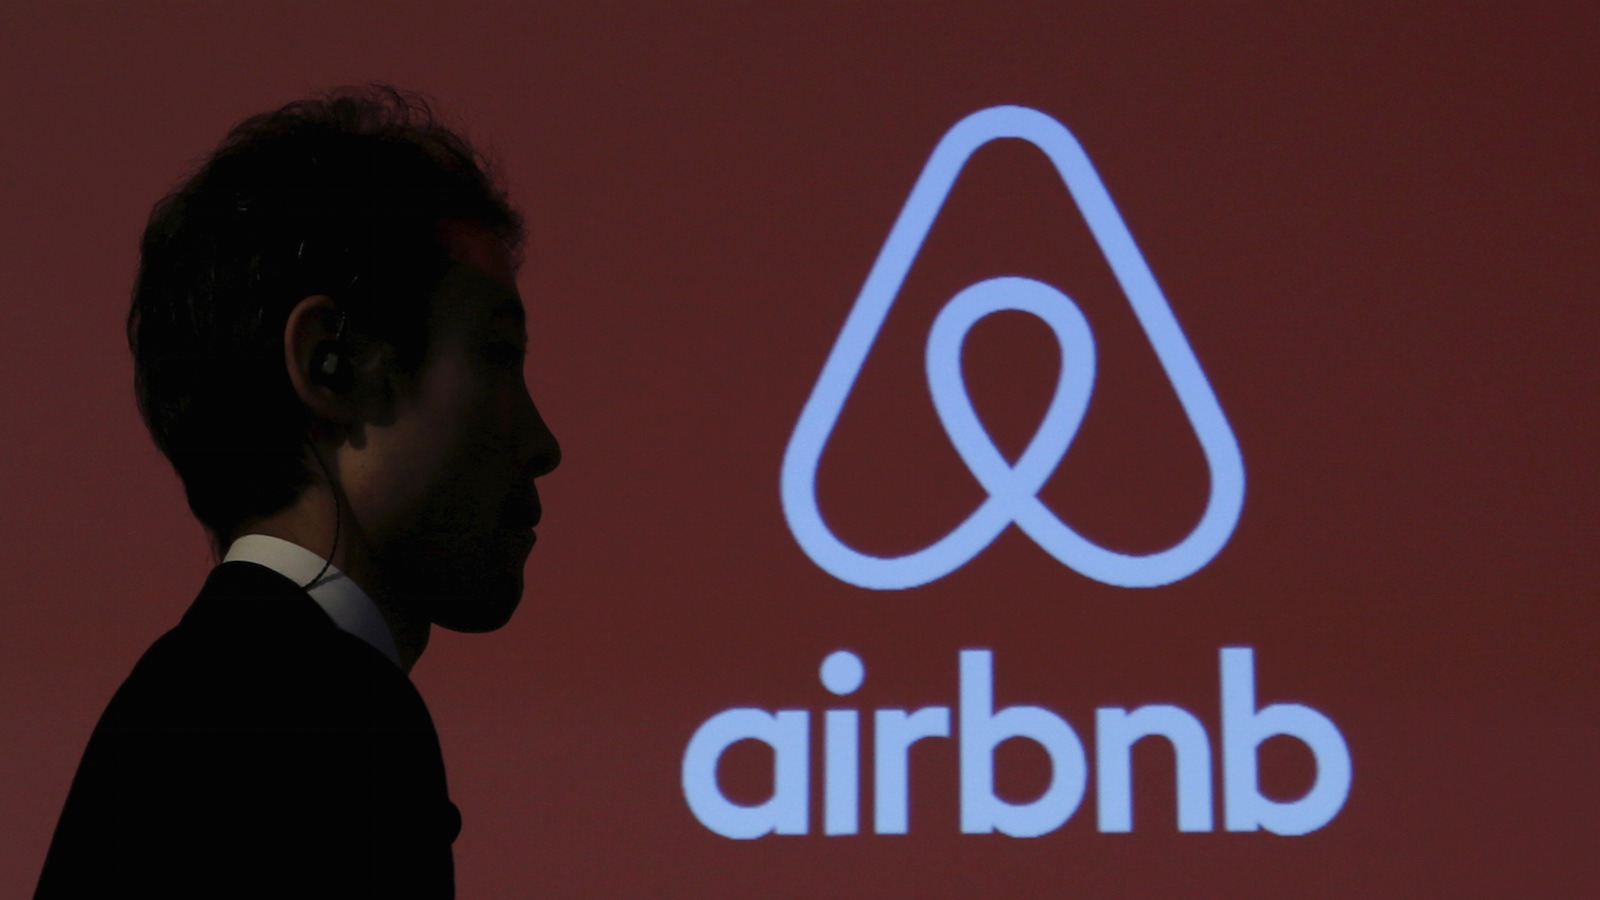 A man walks past a logo of Airbnb after a news conference in Tokyo, Japan, November 26, 2015.